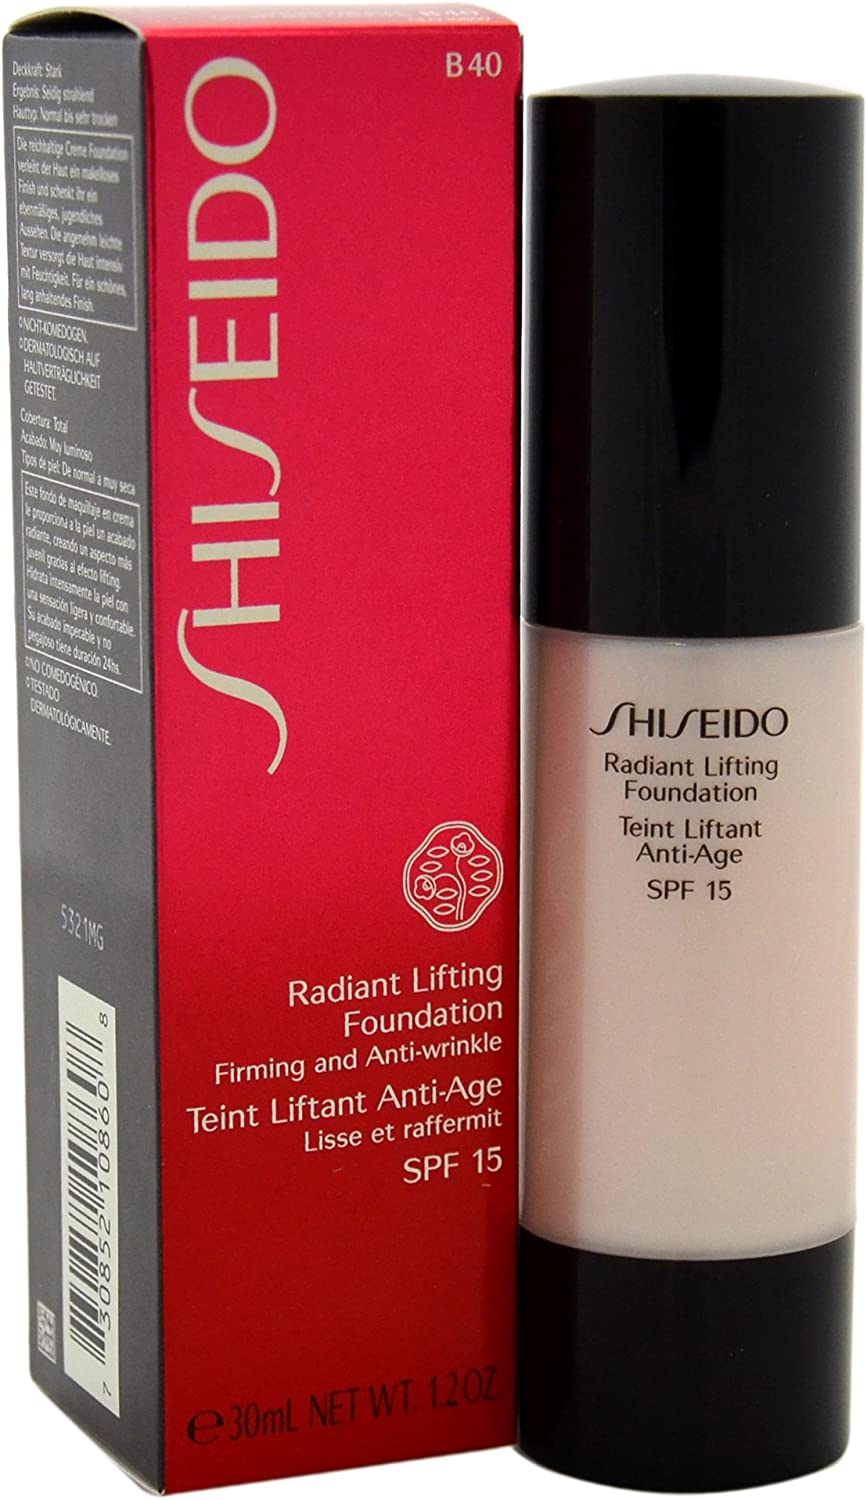 Shiseido Radiant Lifting SPF15# B40 Natural Fair Beige Foundation for Women, 1.2 Ounce